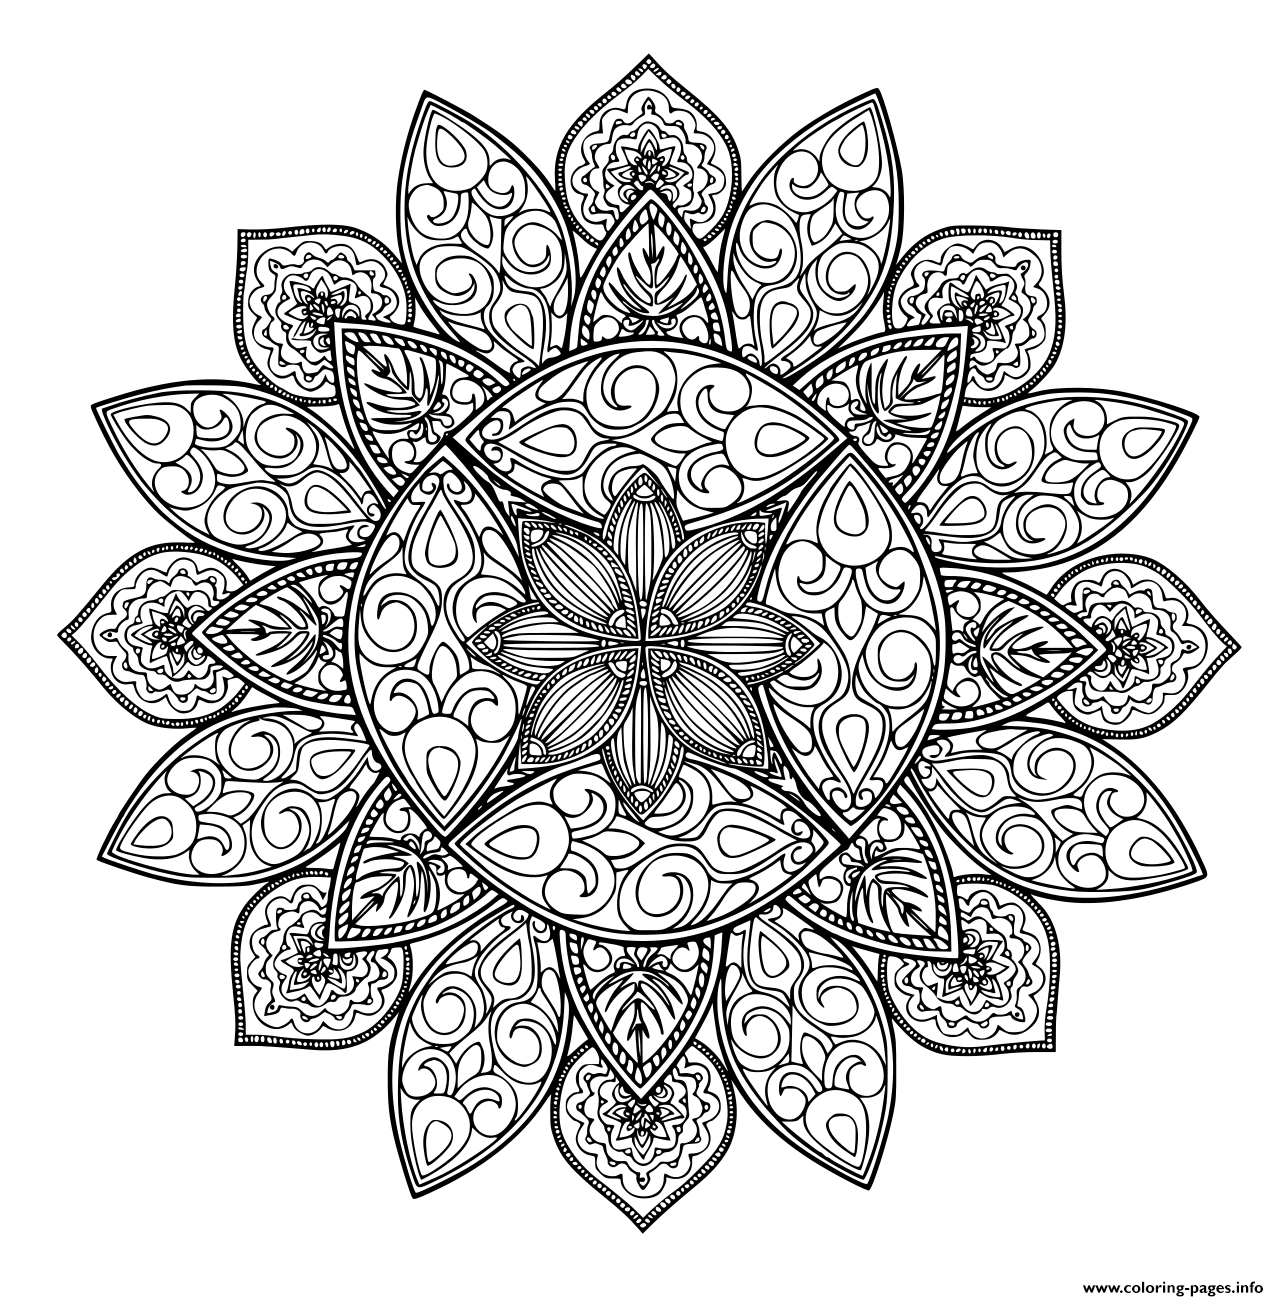 Mandala Geometric Shape Adult coloring pages